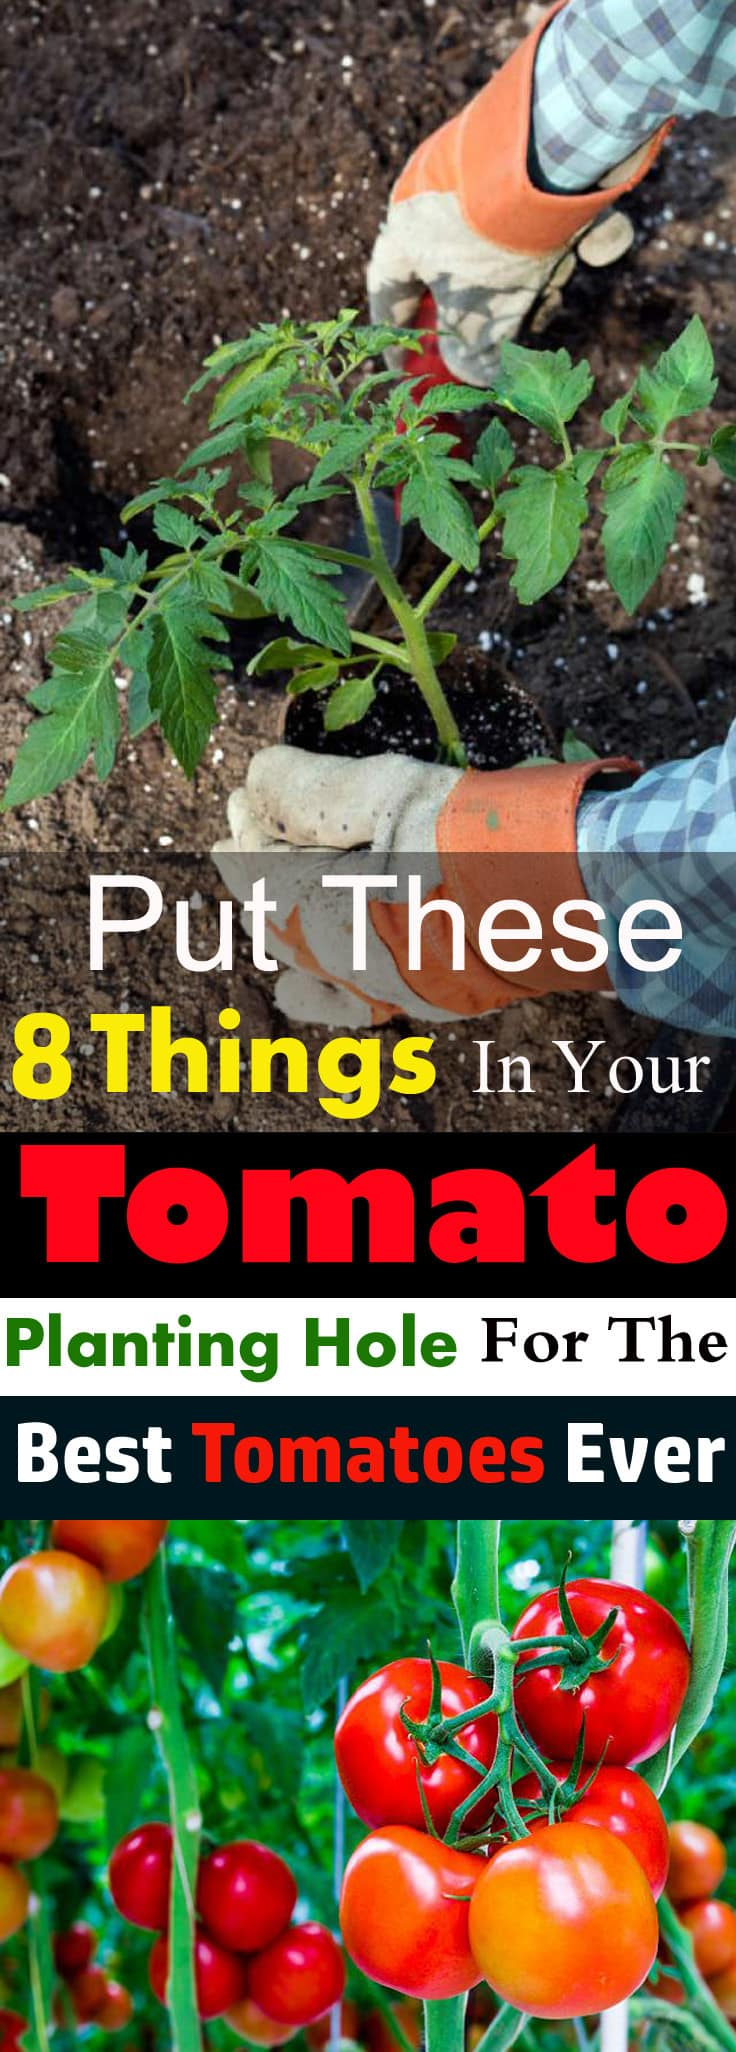 What is the best soil for tomatoes - Do You Want To Grow The Best Tomatoes In Taste And Size And Want To